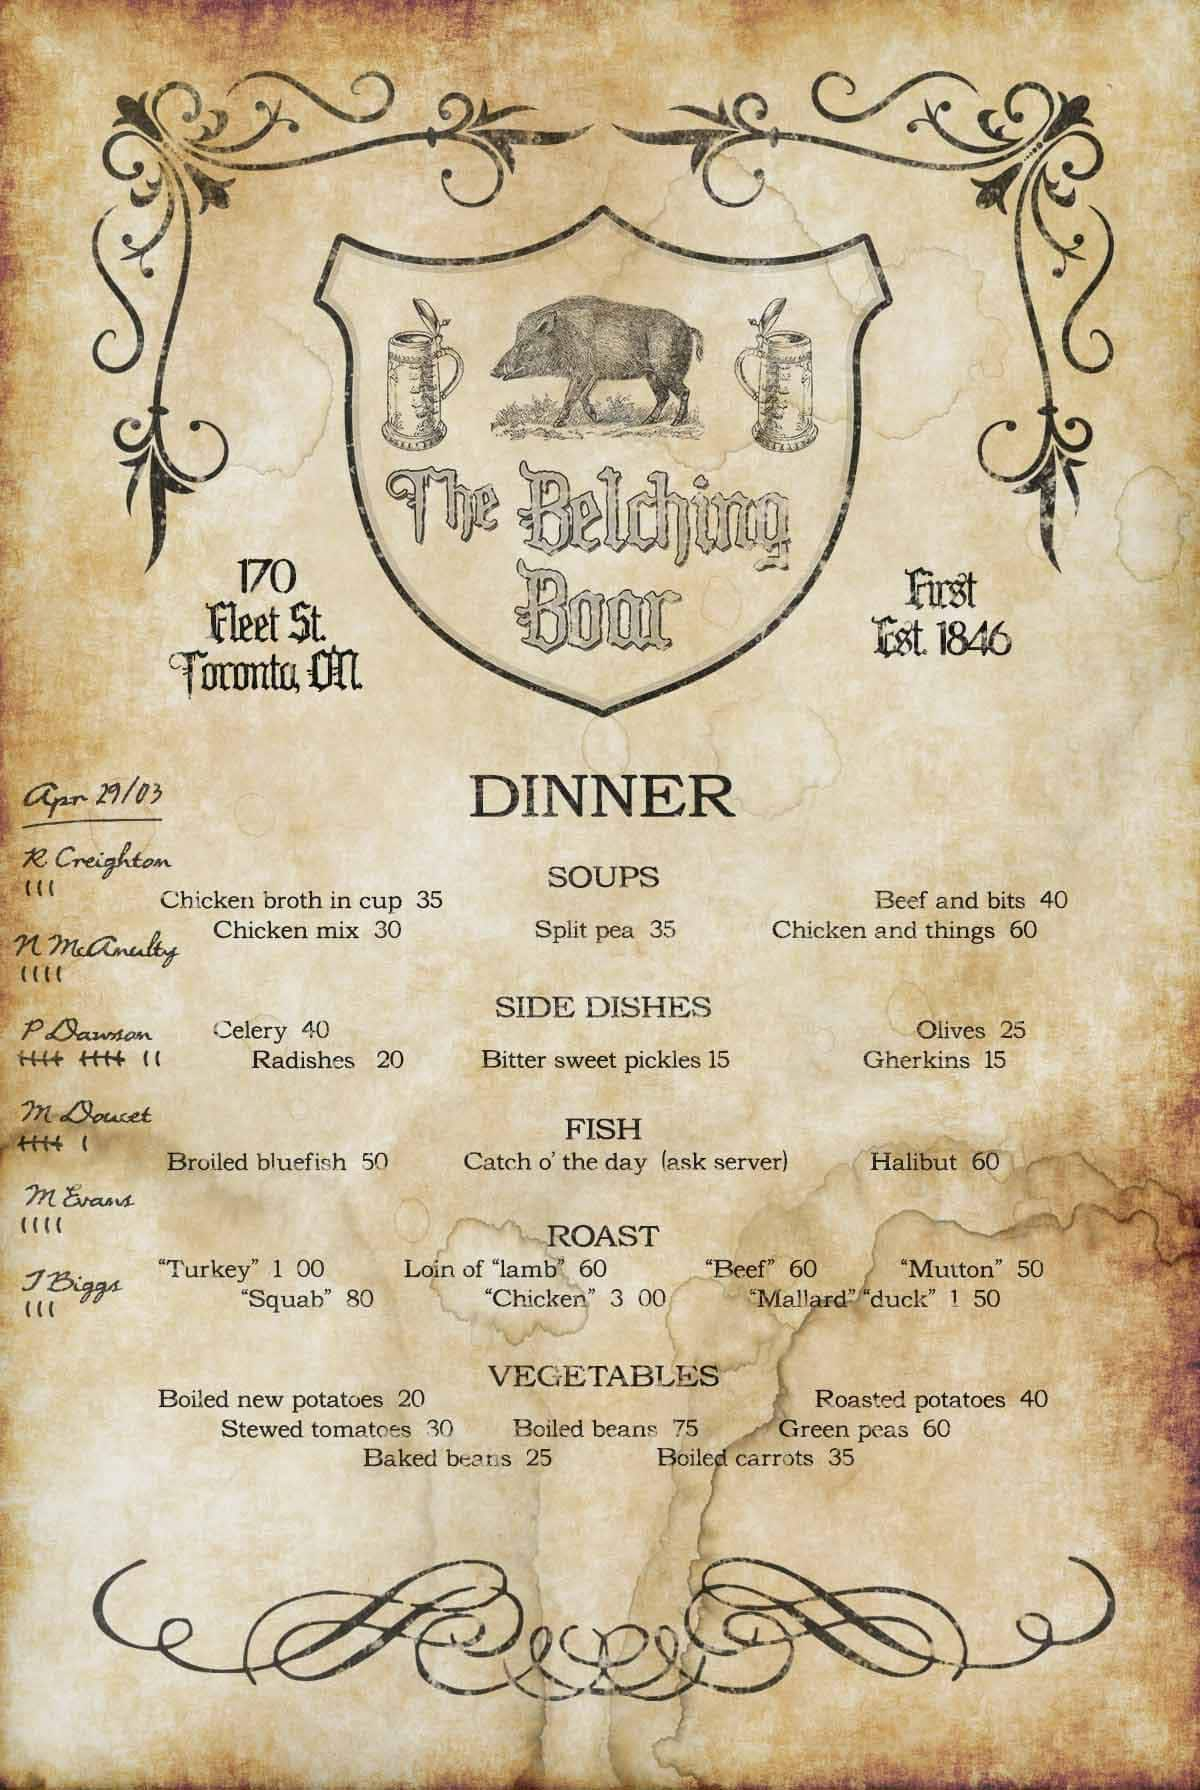 A menu from the Belching Boar with handwritten tallies in the margin clearly indicating that P. Dawson won a contest on the night of Apr. 29, 1903.